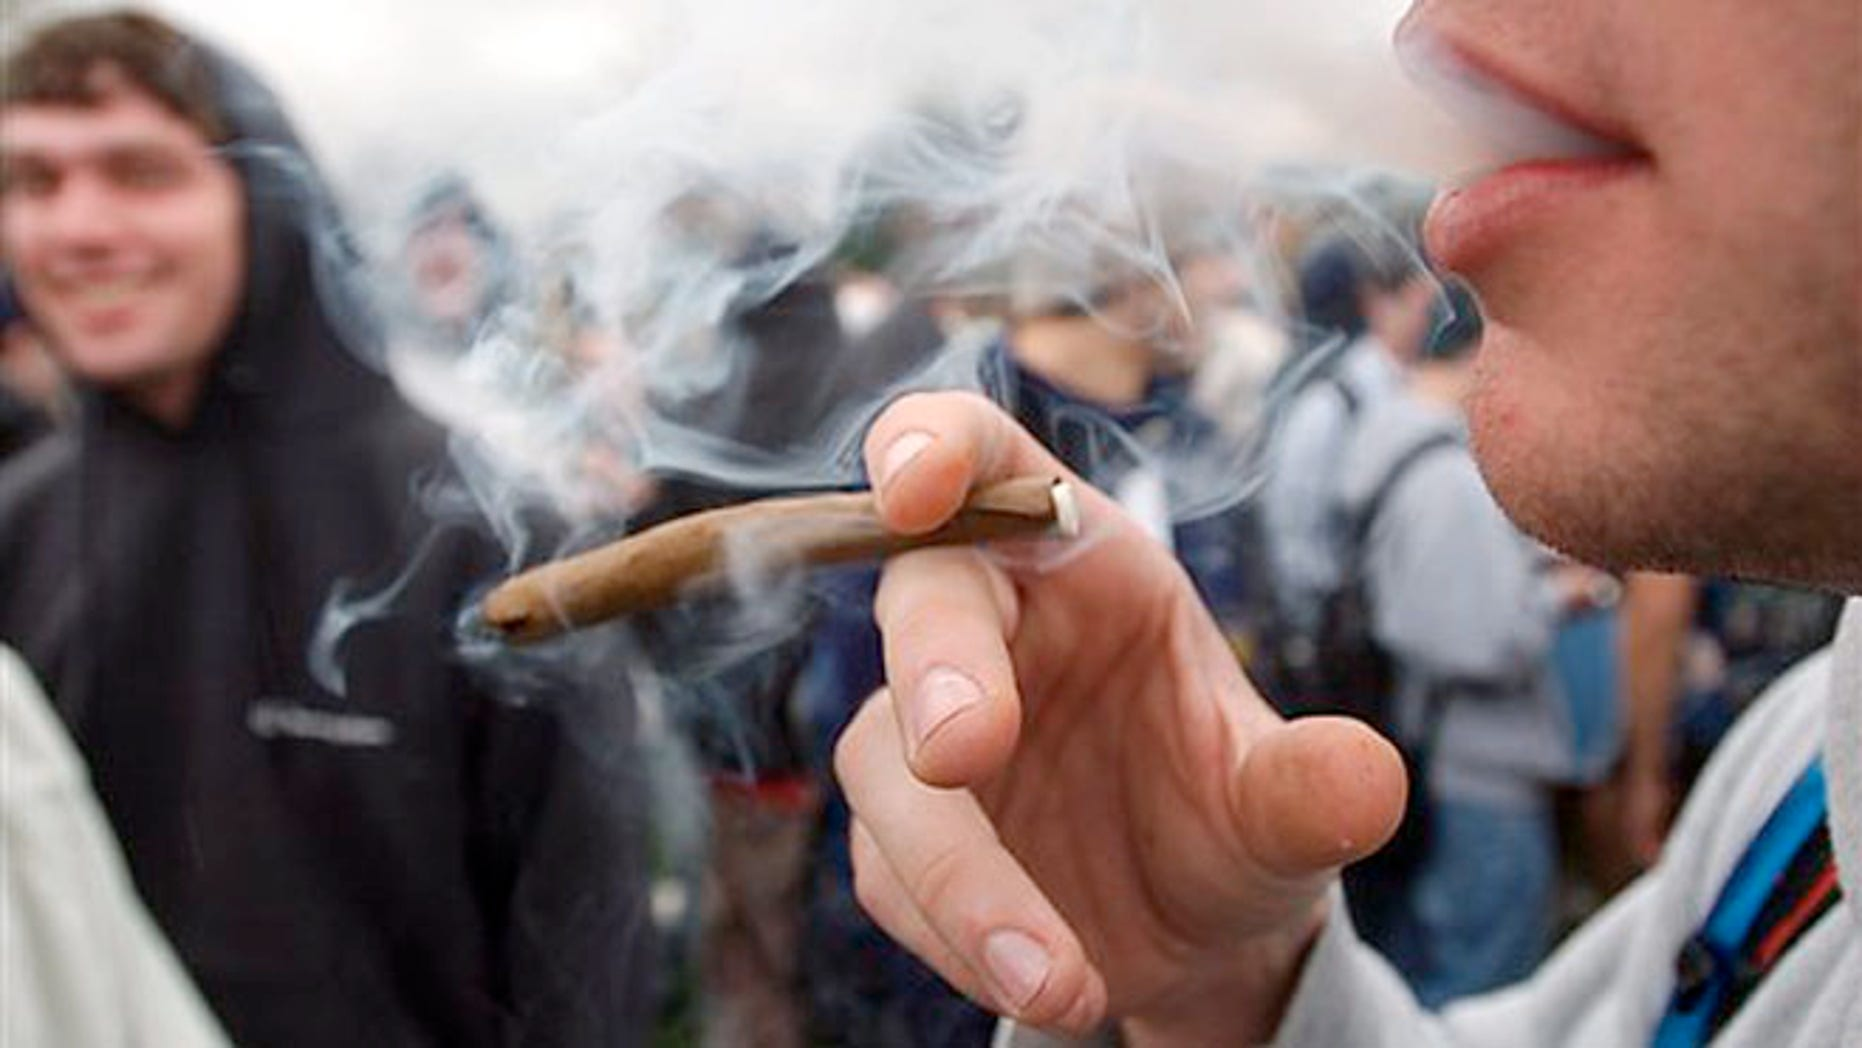 A Colorado man who moved his business to South Carolina says the state's decision to legalize pot has left him with a stoned labor pool.